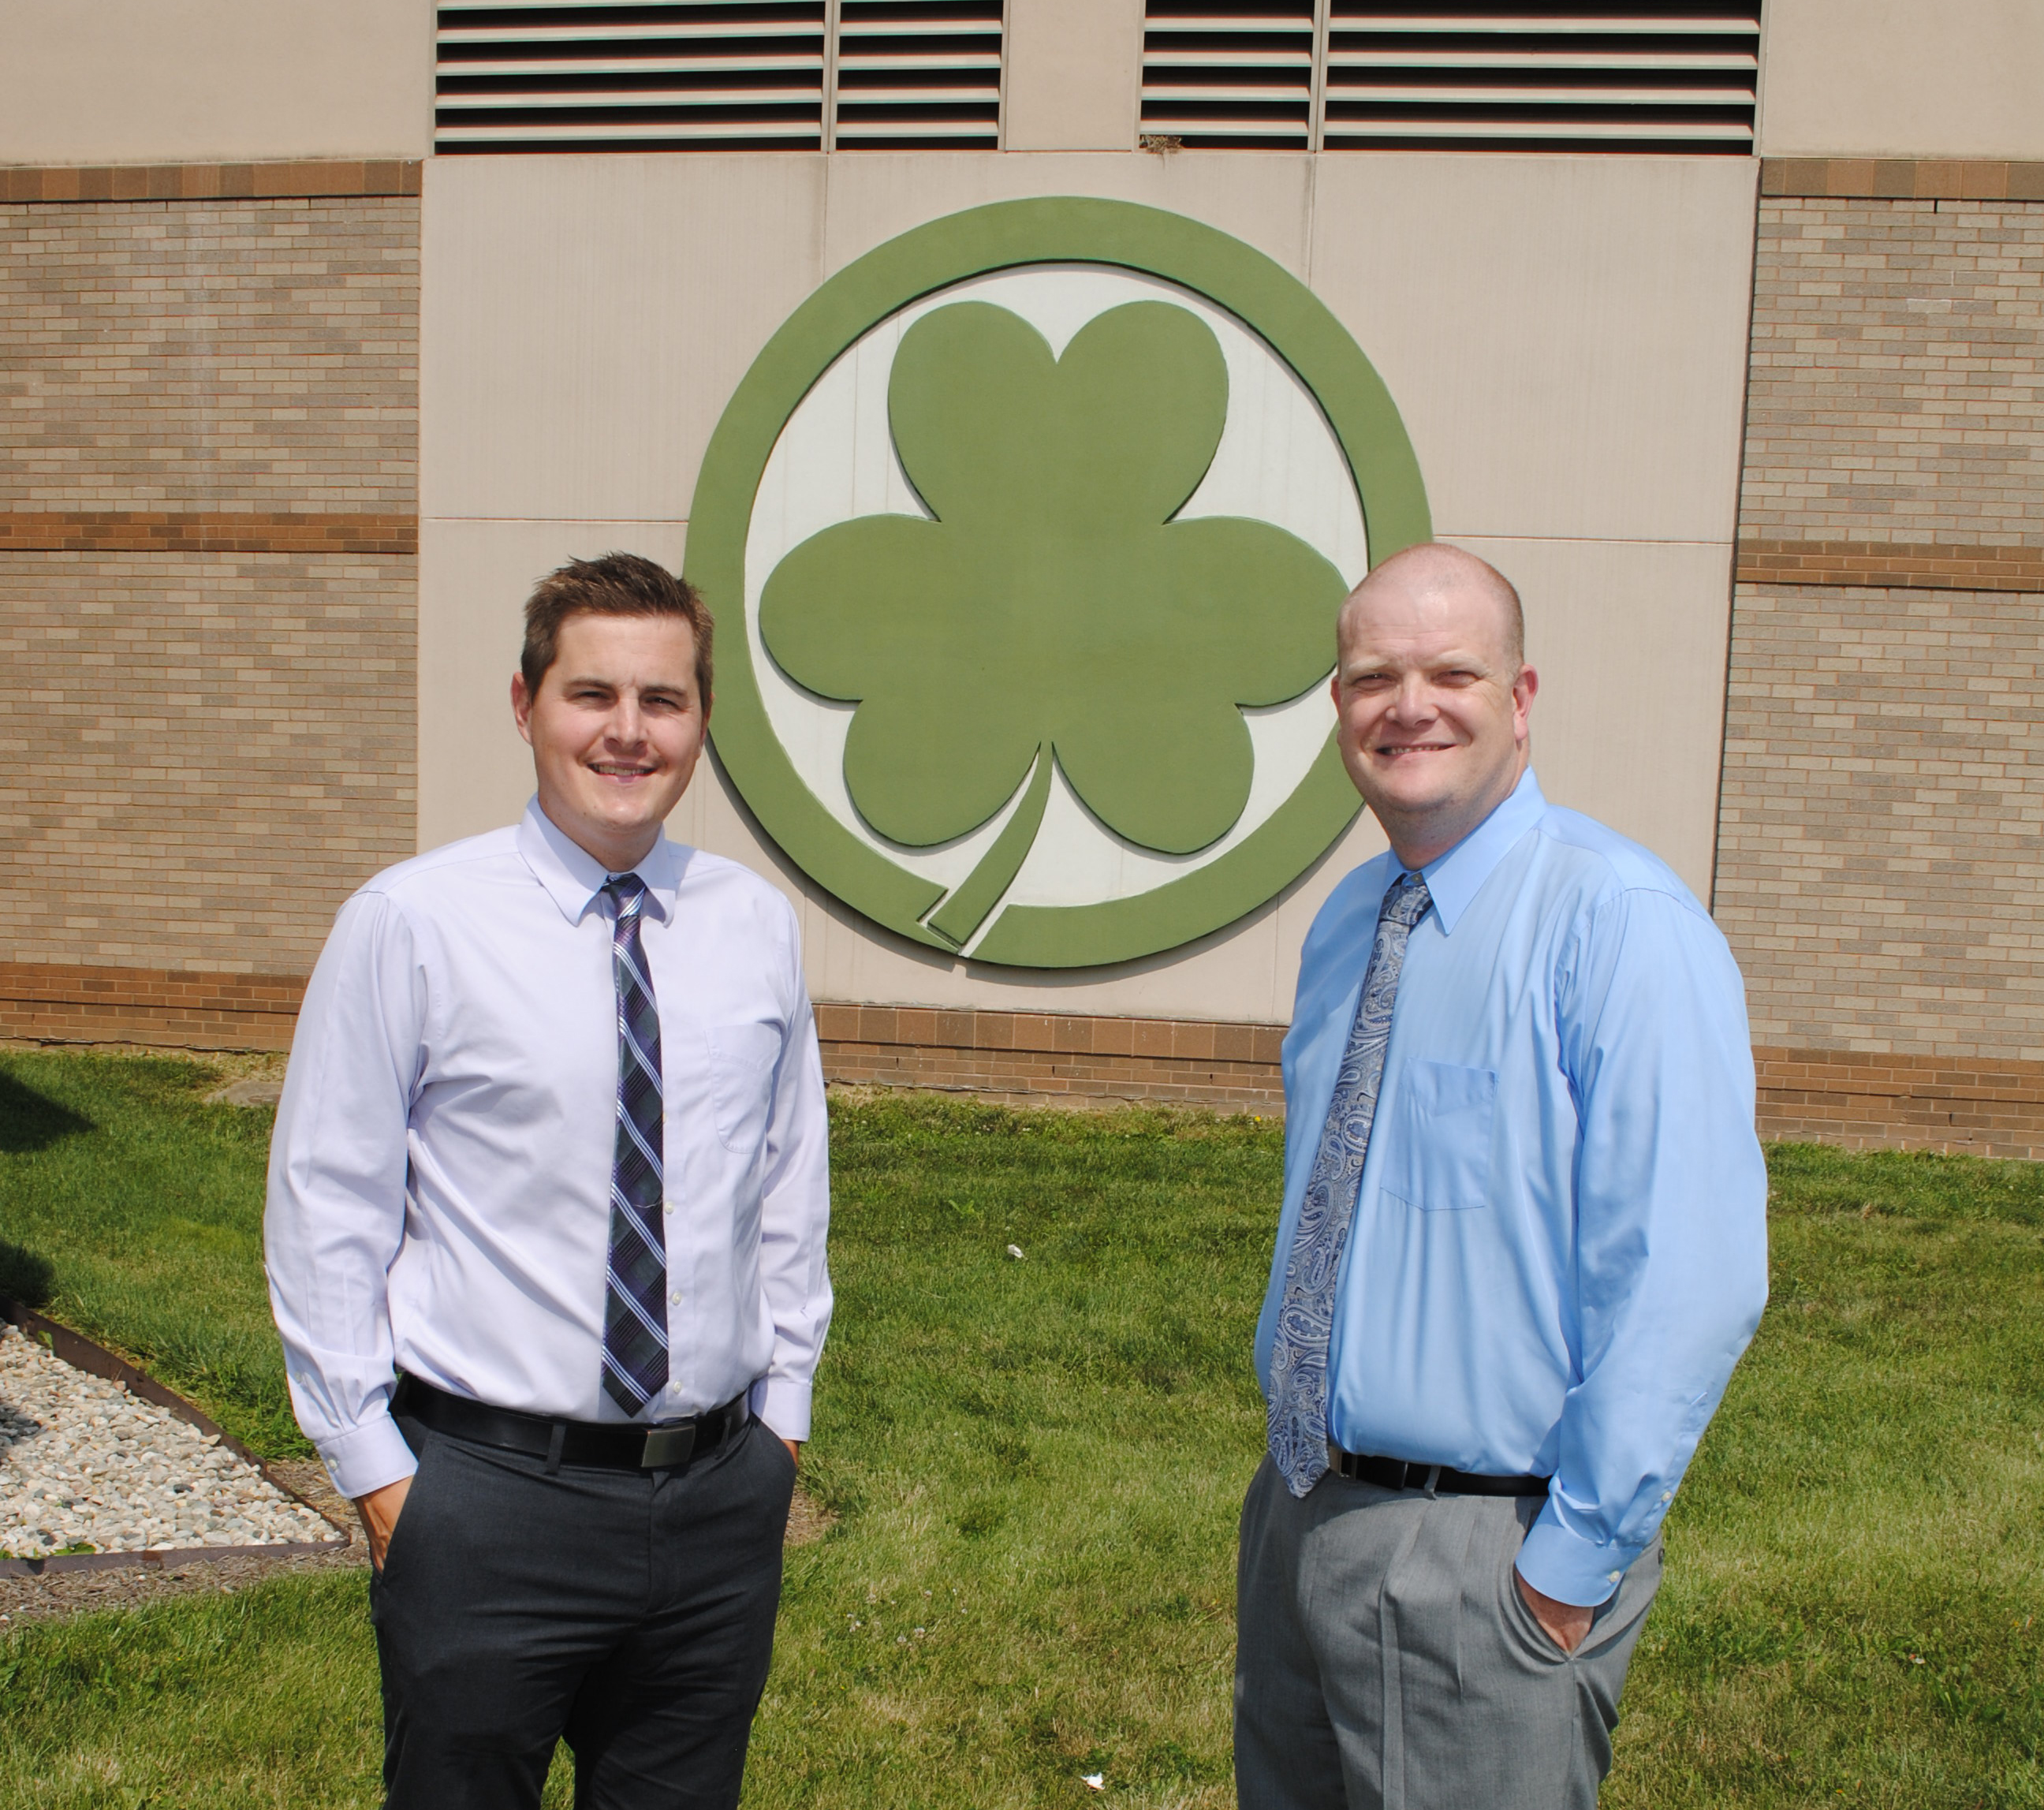 Ryan Haughey, left, and Corey Hartley have each taught and served as  assistant principal